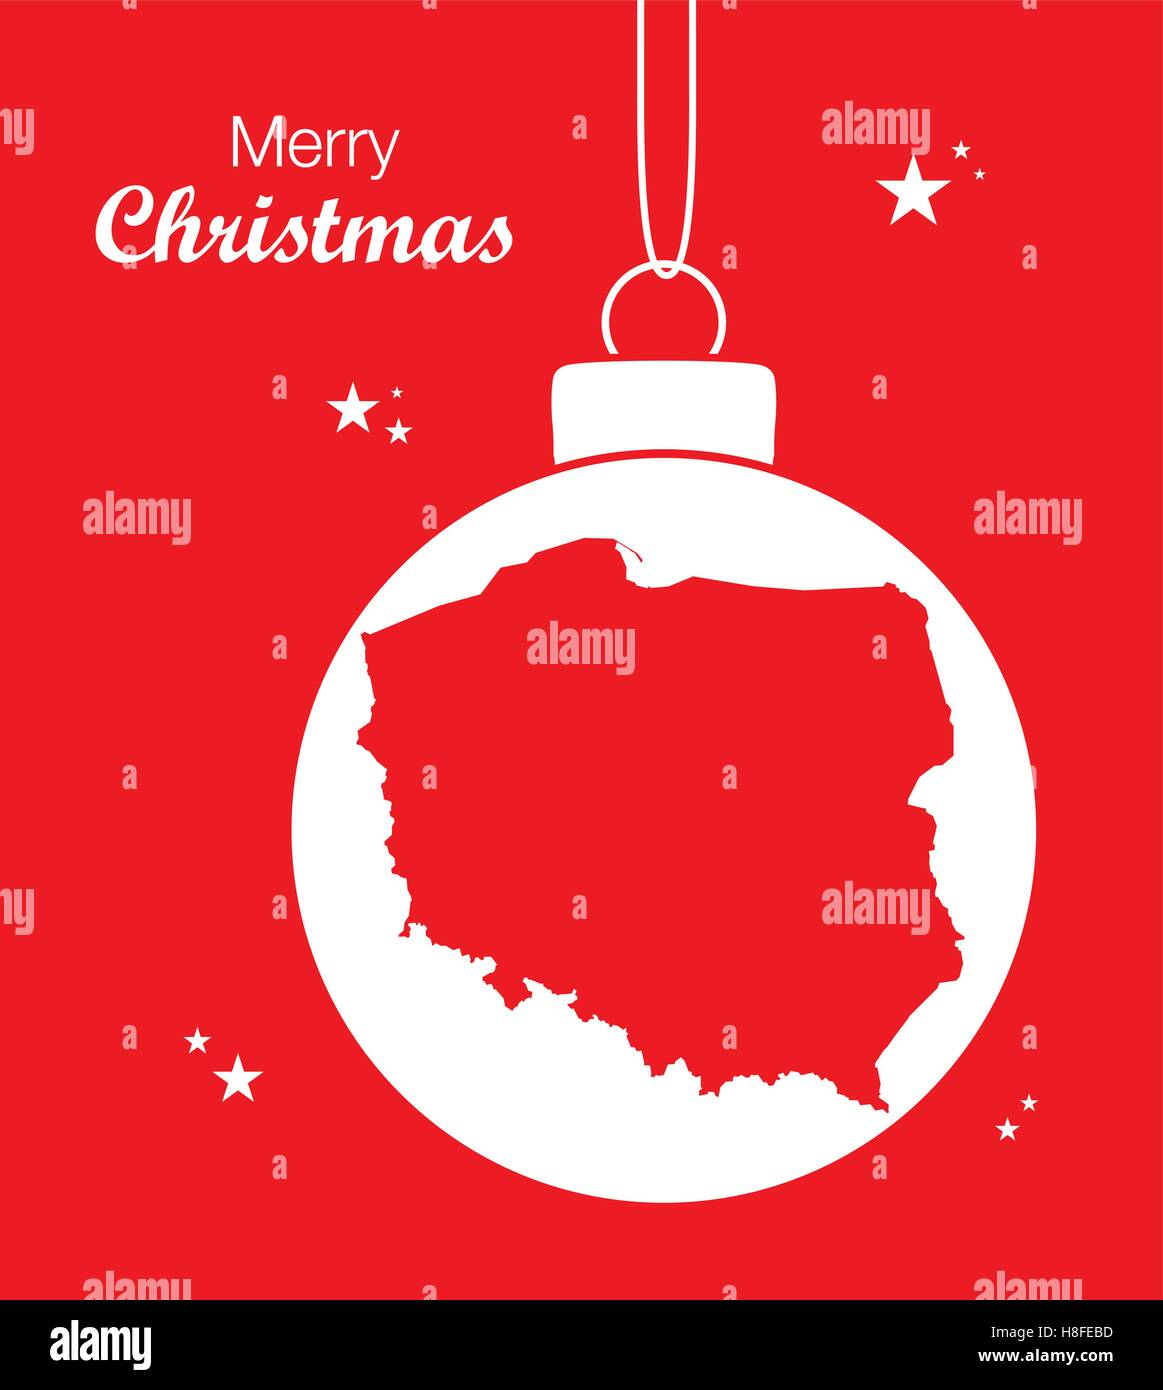 Merry Christmas In Polish.Merry Christmas Map Poland Stock Vector Art Illustration